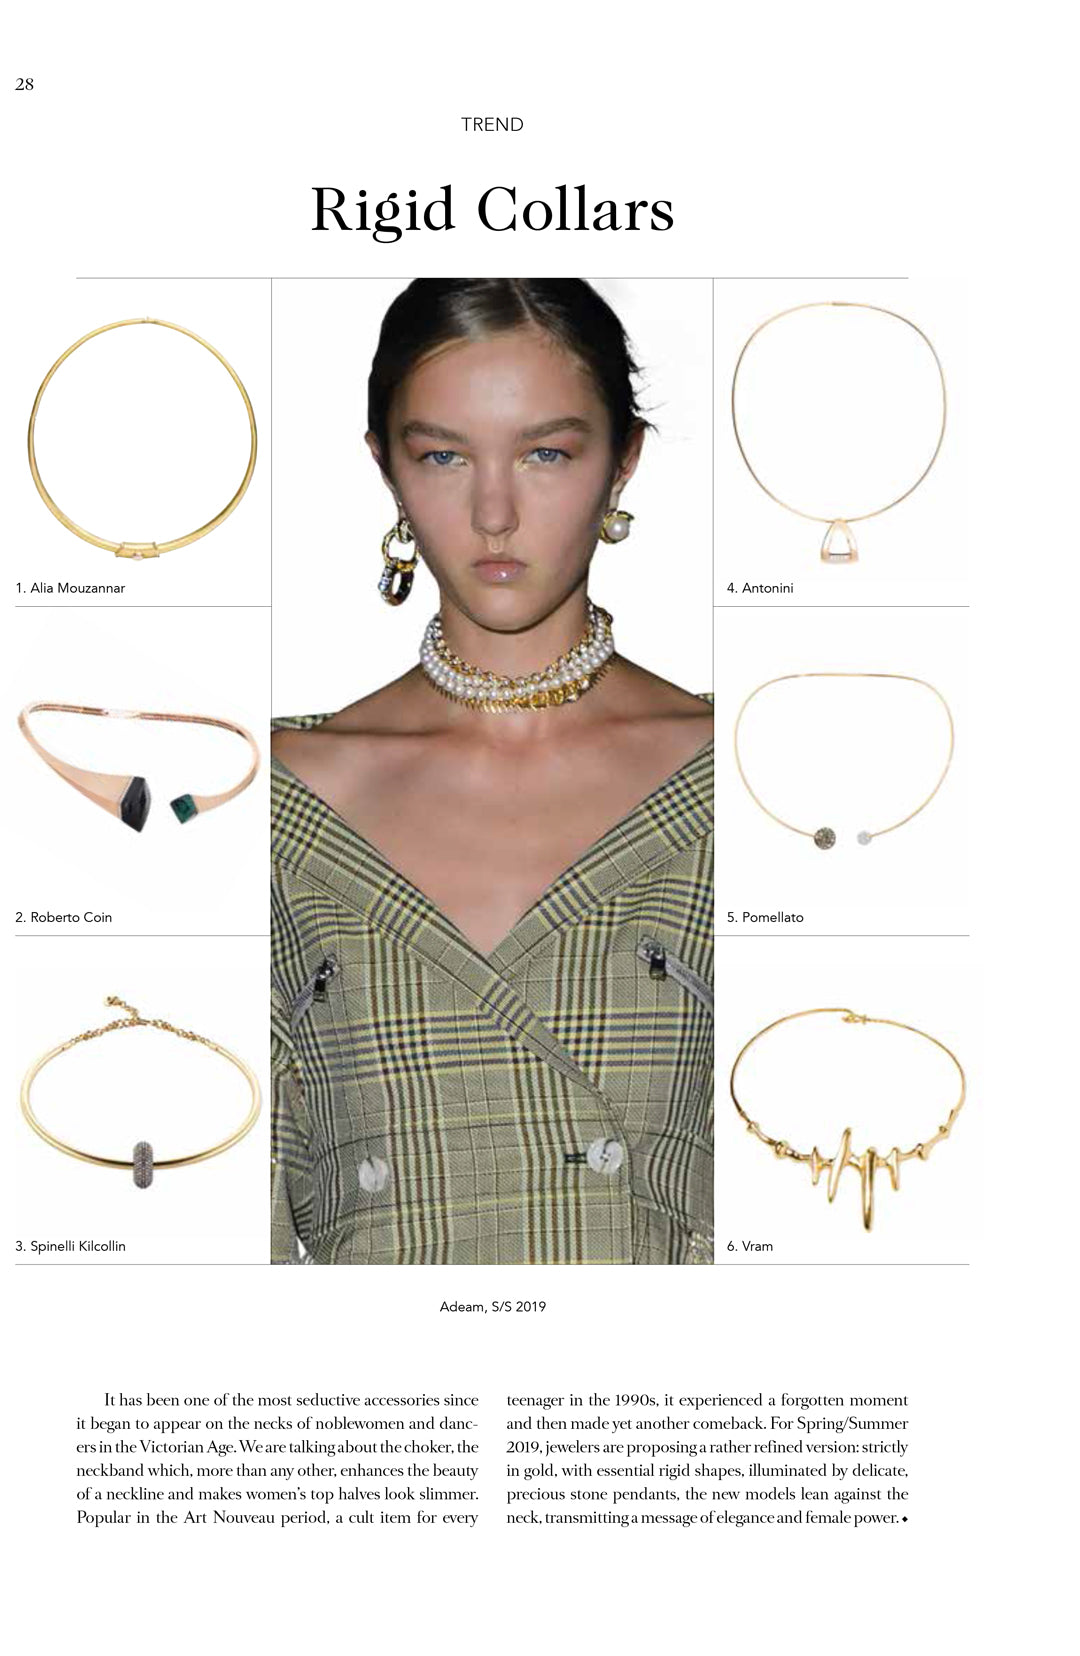 spinelli kilcollin vo+ Nebula CCW Bar Necklace luxury-jewelry